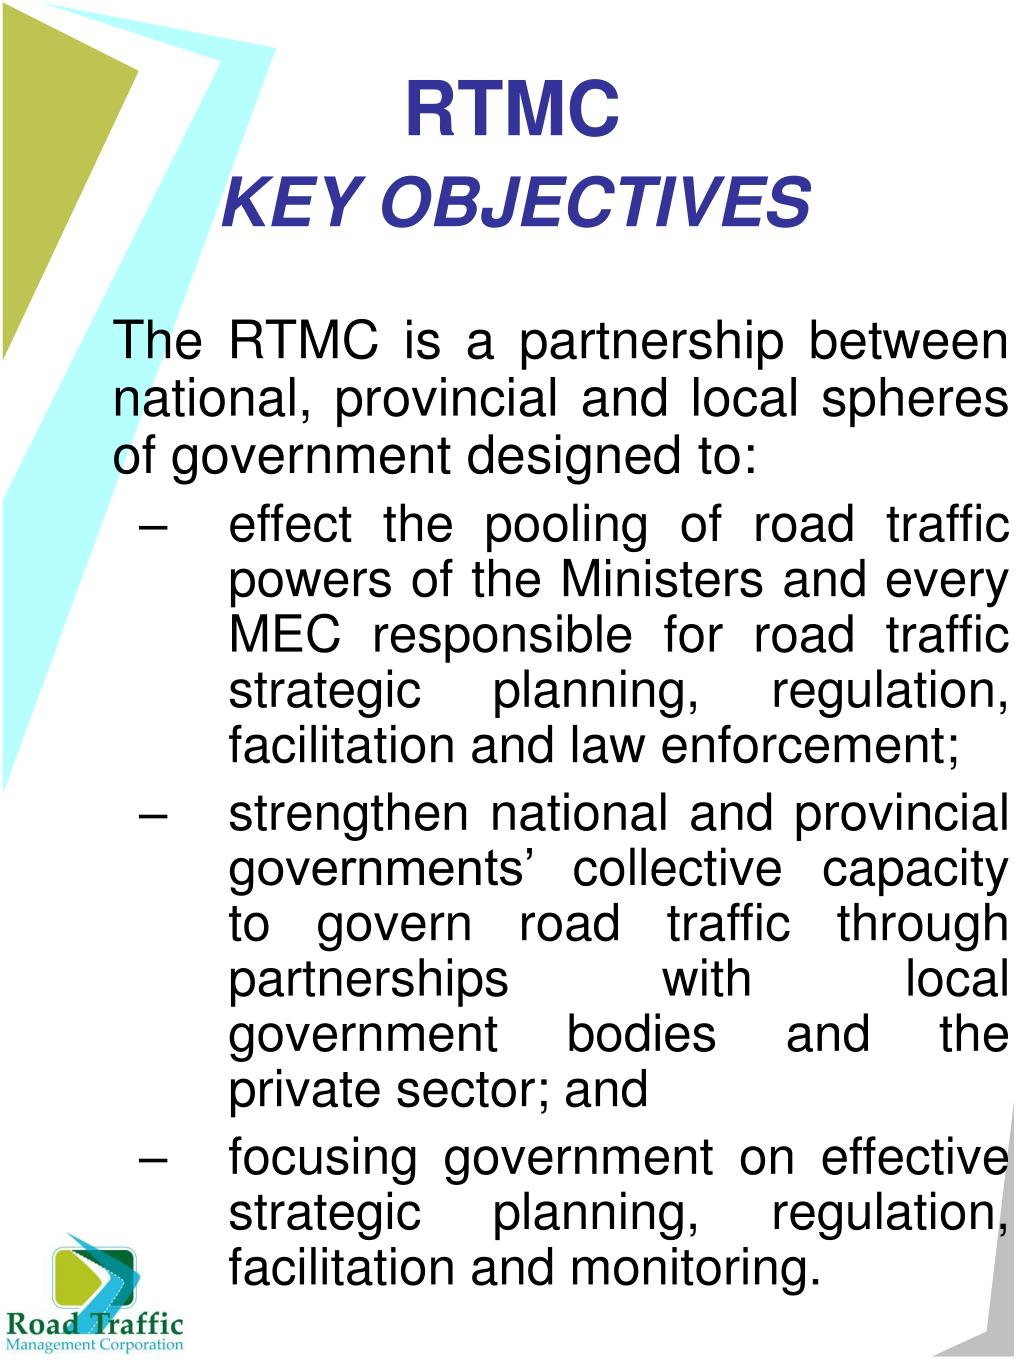 The RTMC is a partnership between national, provincial and local spheres of government designed to: